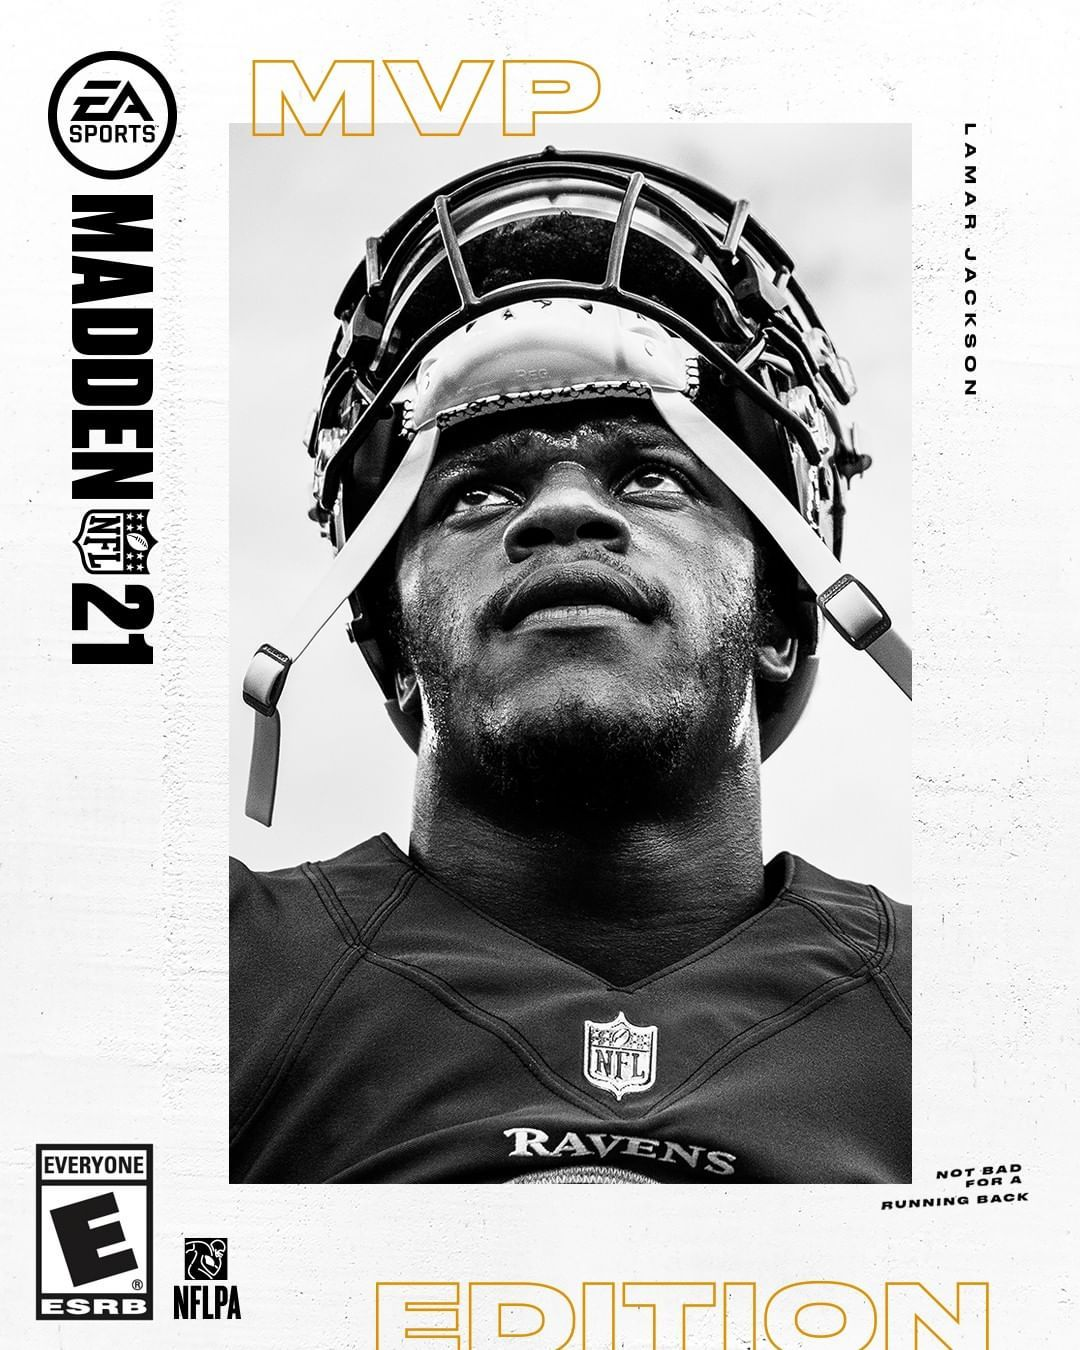 "EA SPORTS Madden NFL 21 on Instagram: ""The @NFL MVP is your #Madden21 Cover Athlete 💪 @new_era8"""